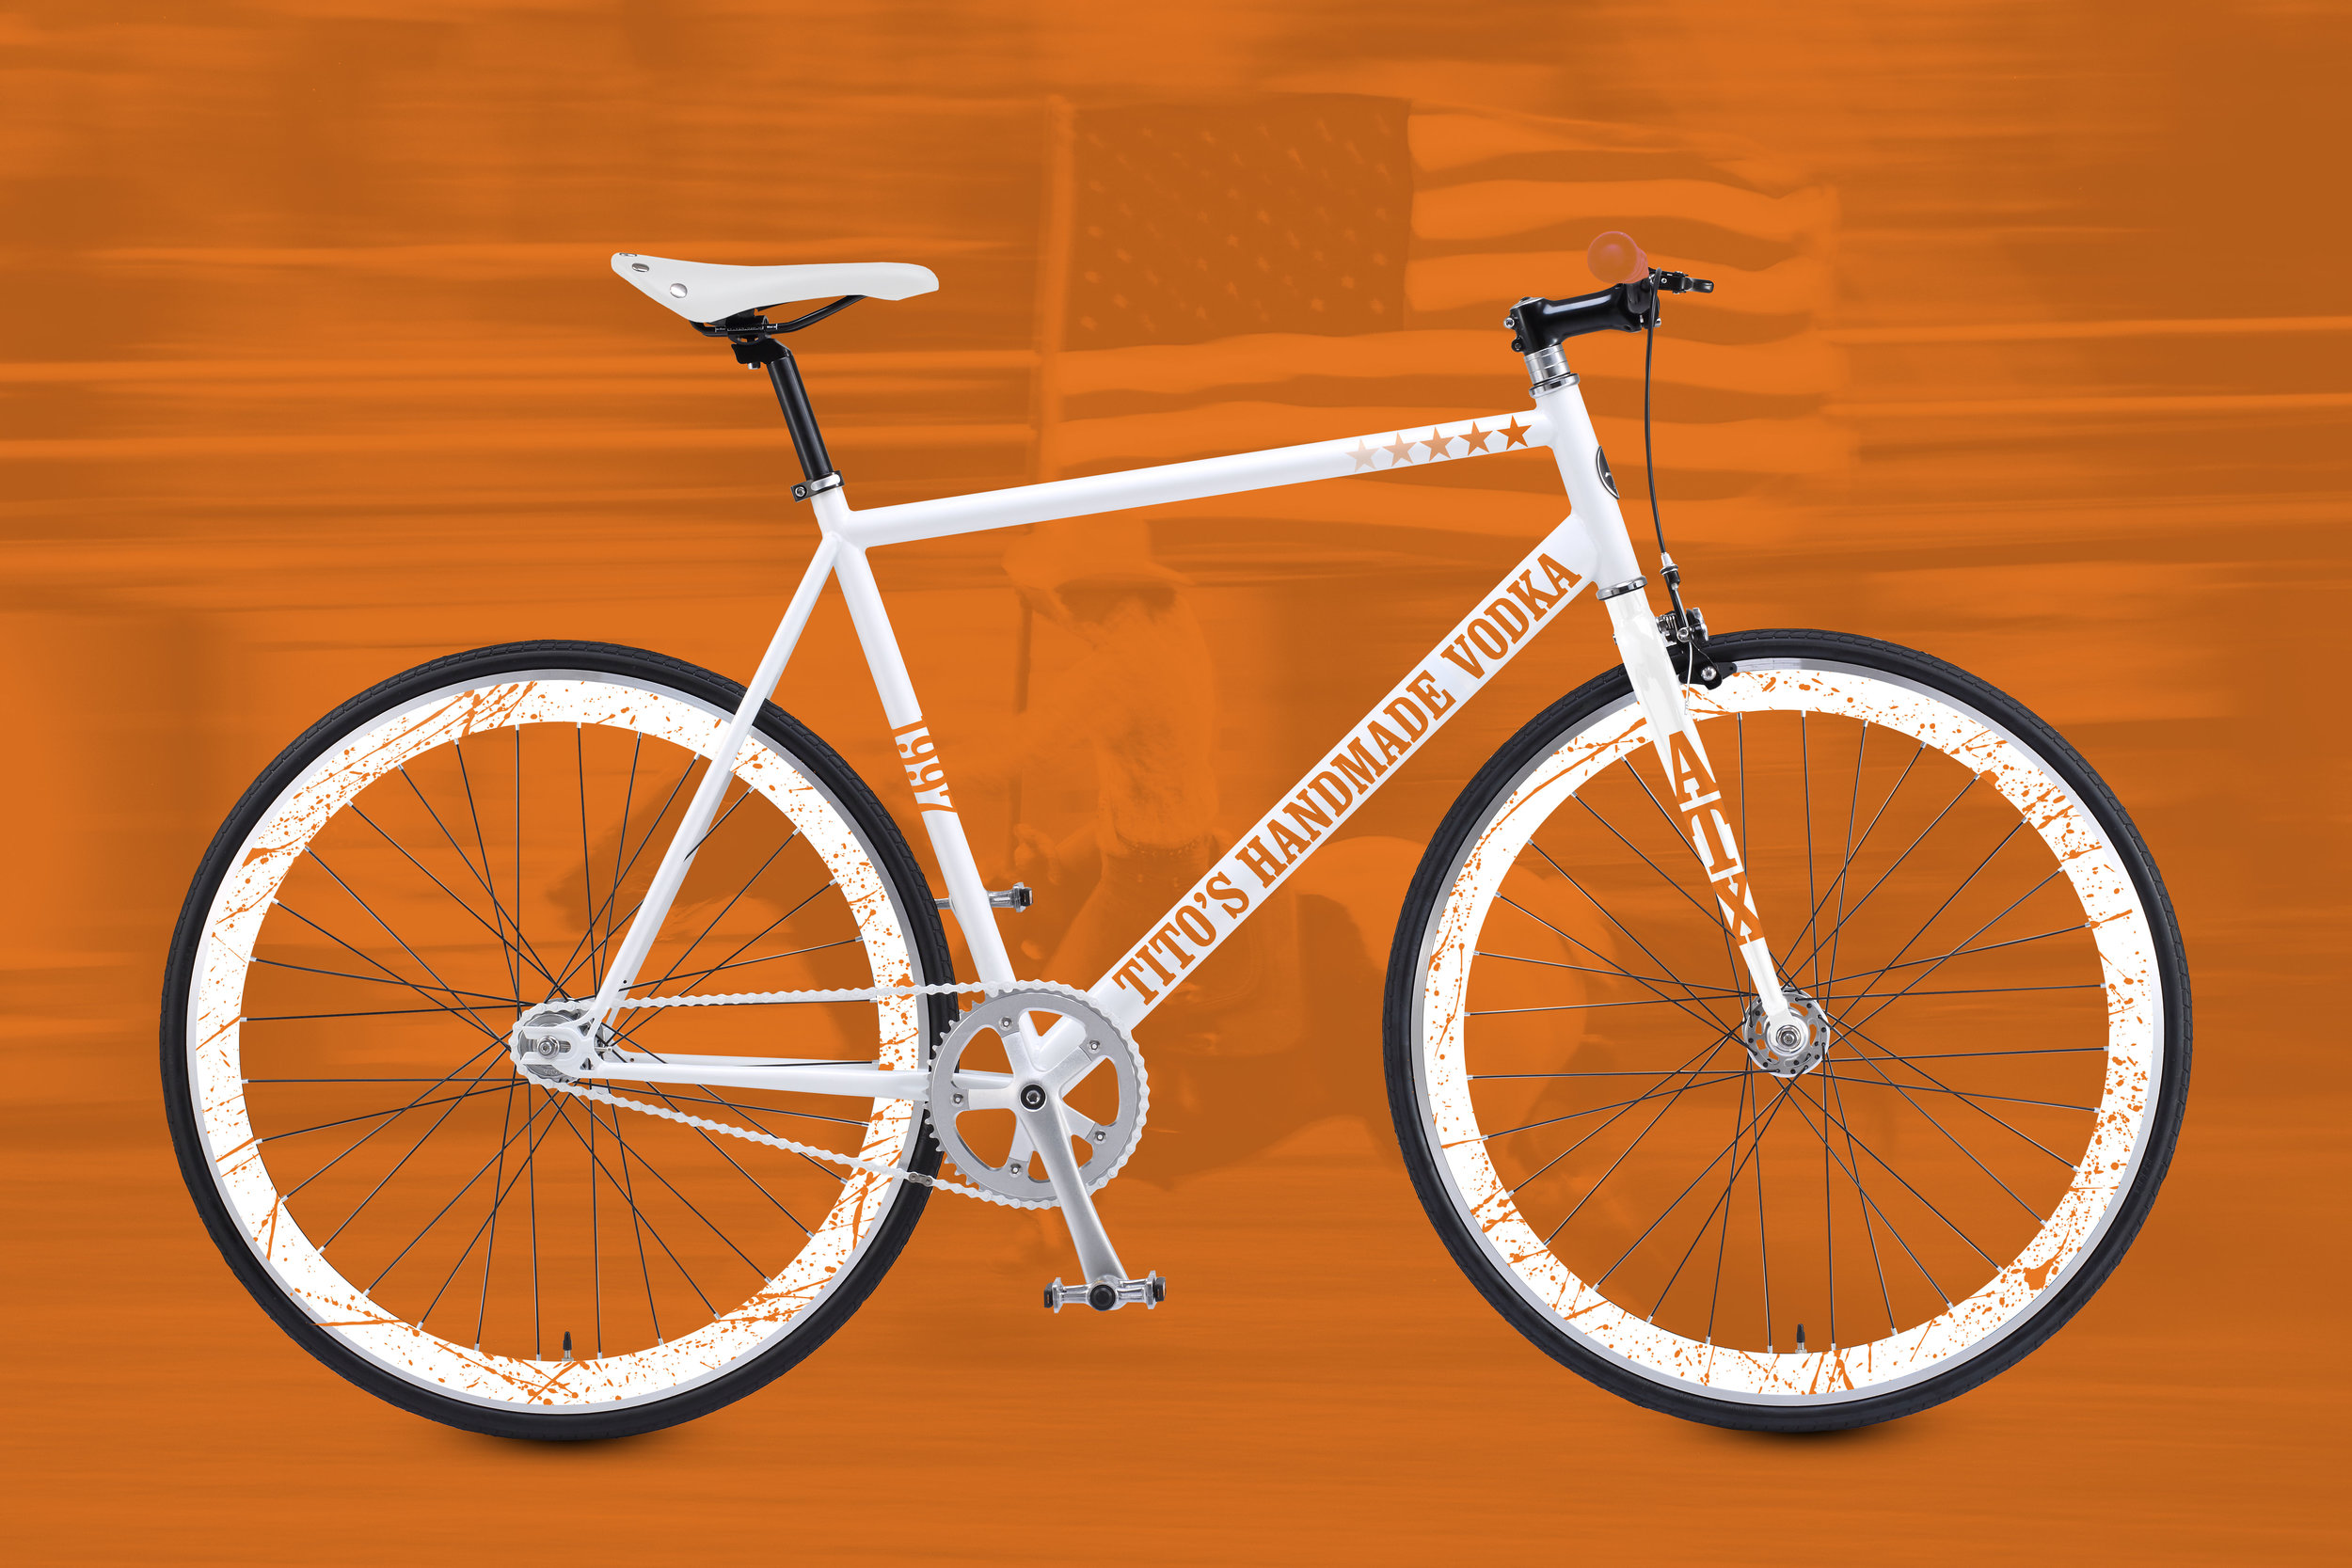 Titos-singlespeed-two.jpg